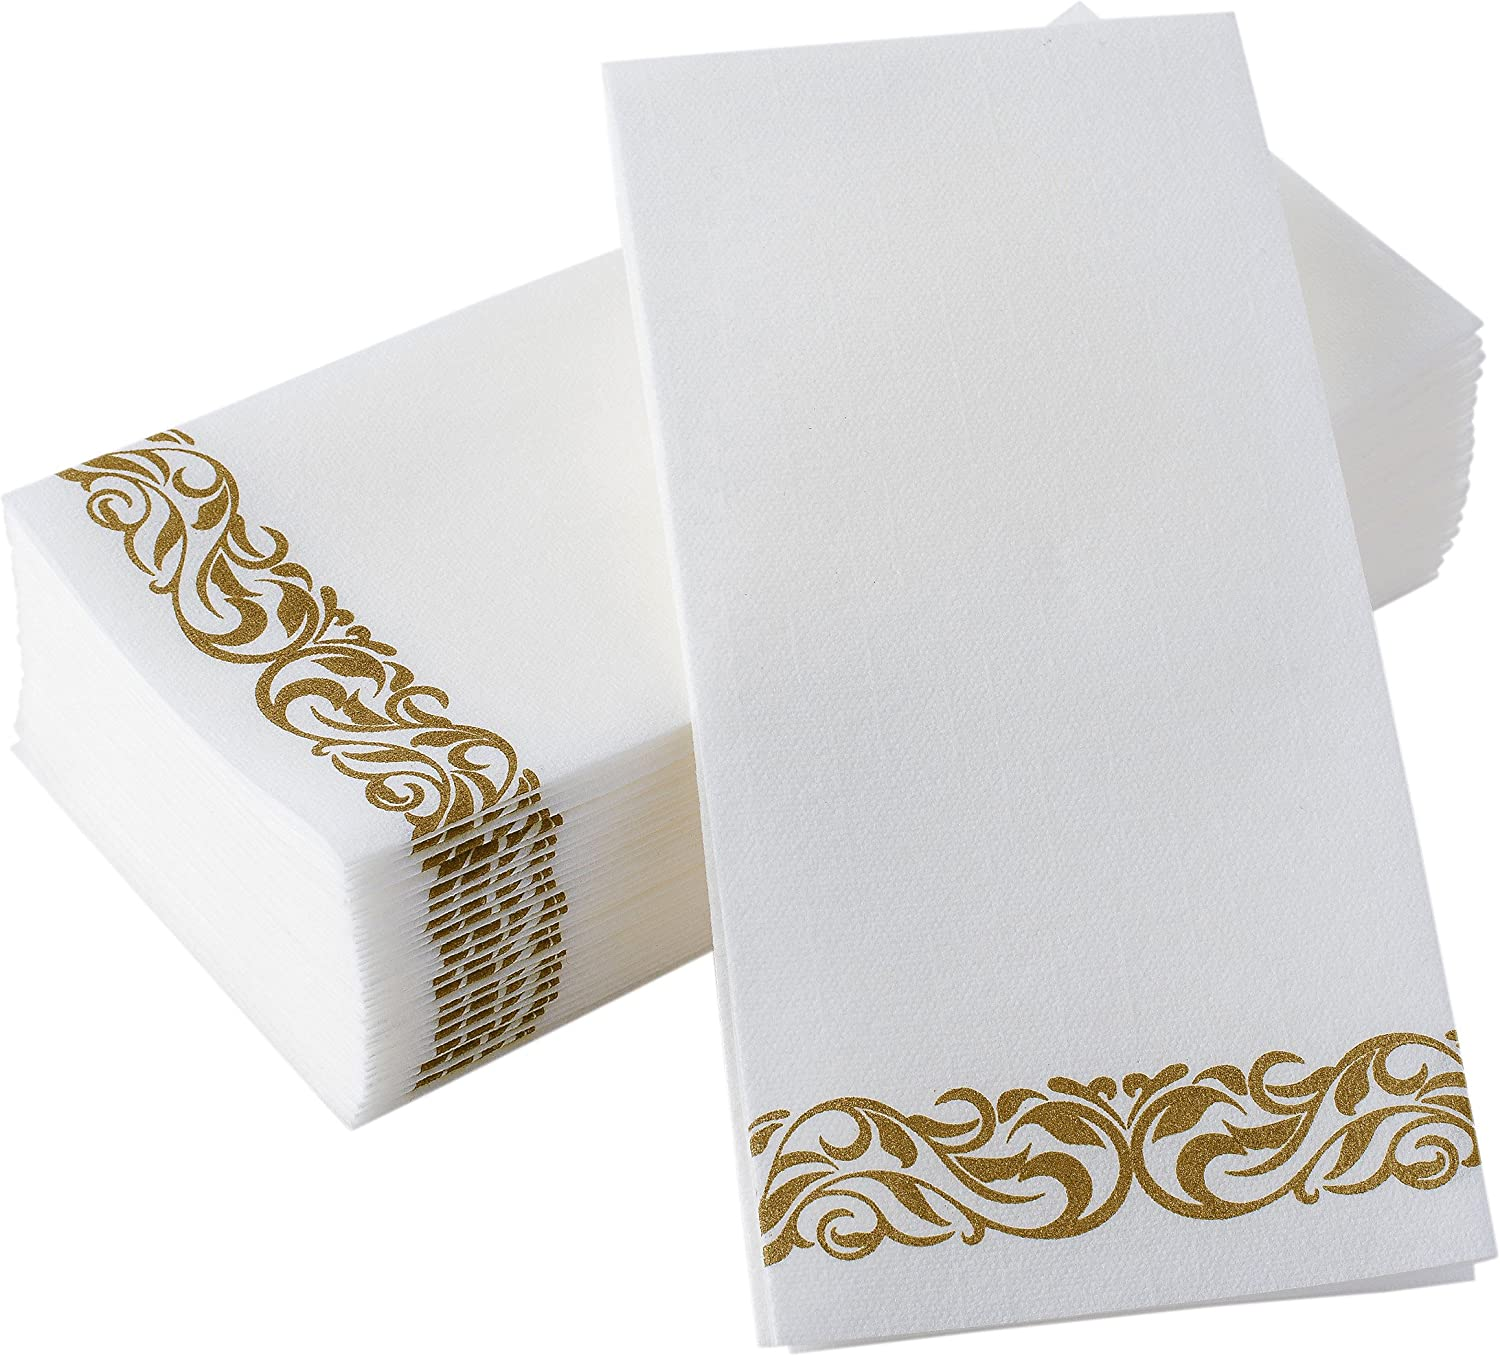 Decorative Paper Guest Towels For Bathroom